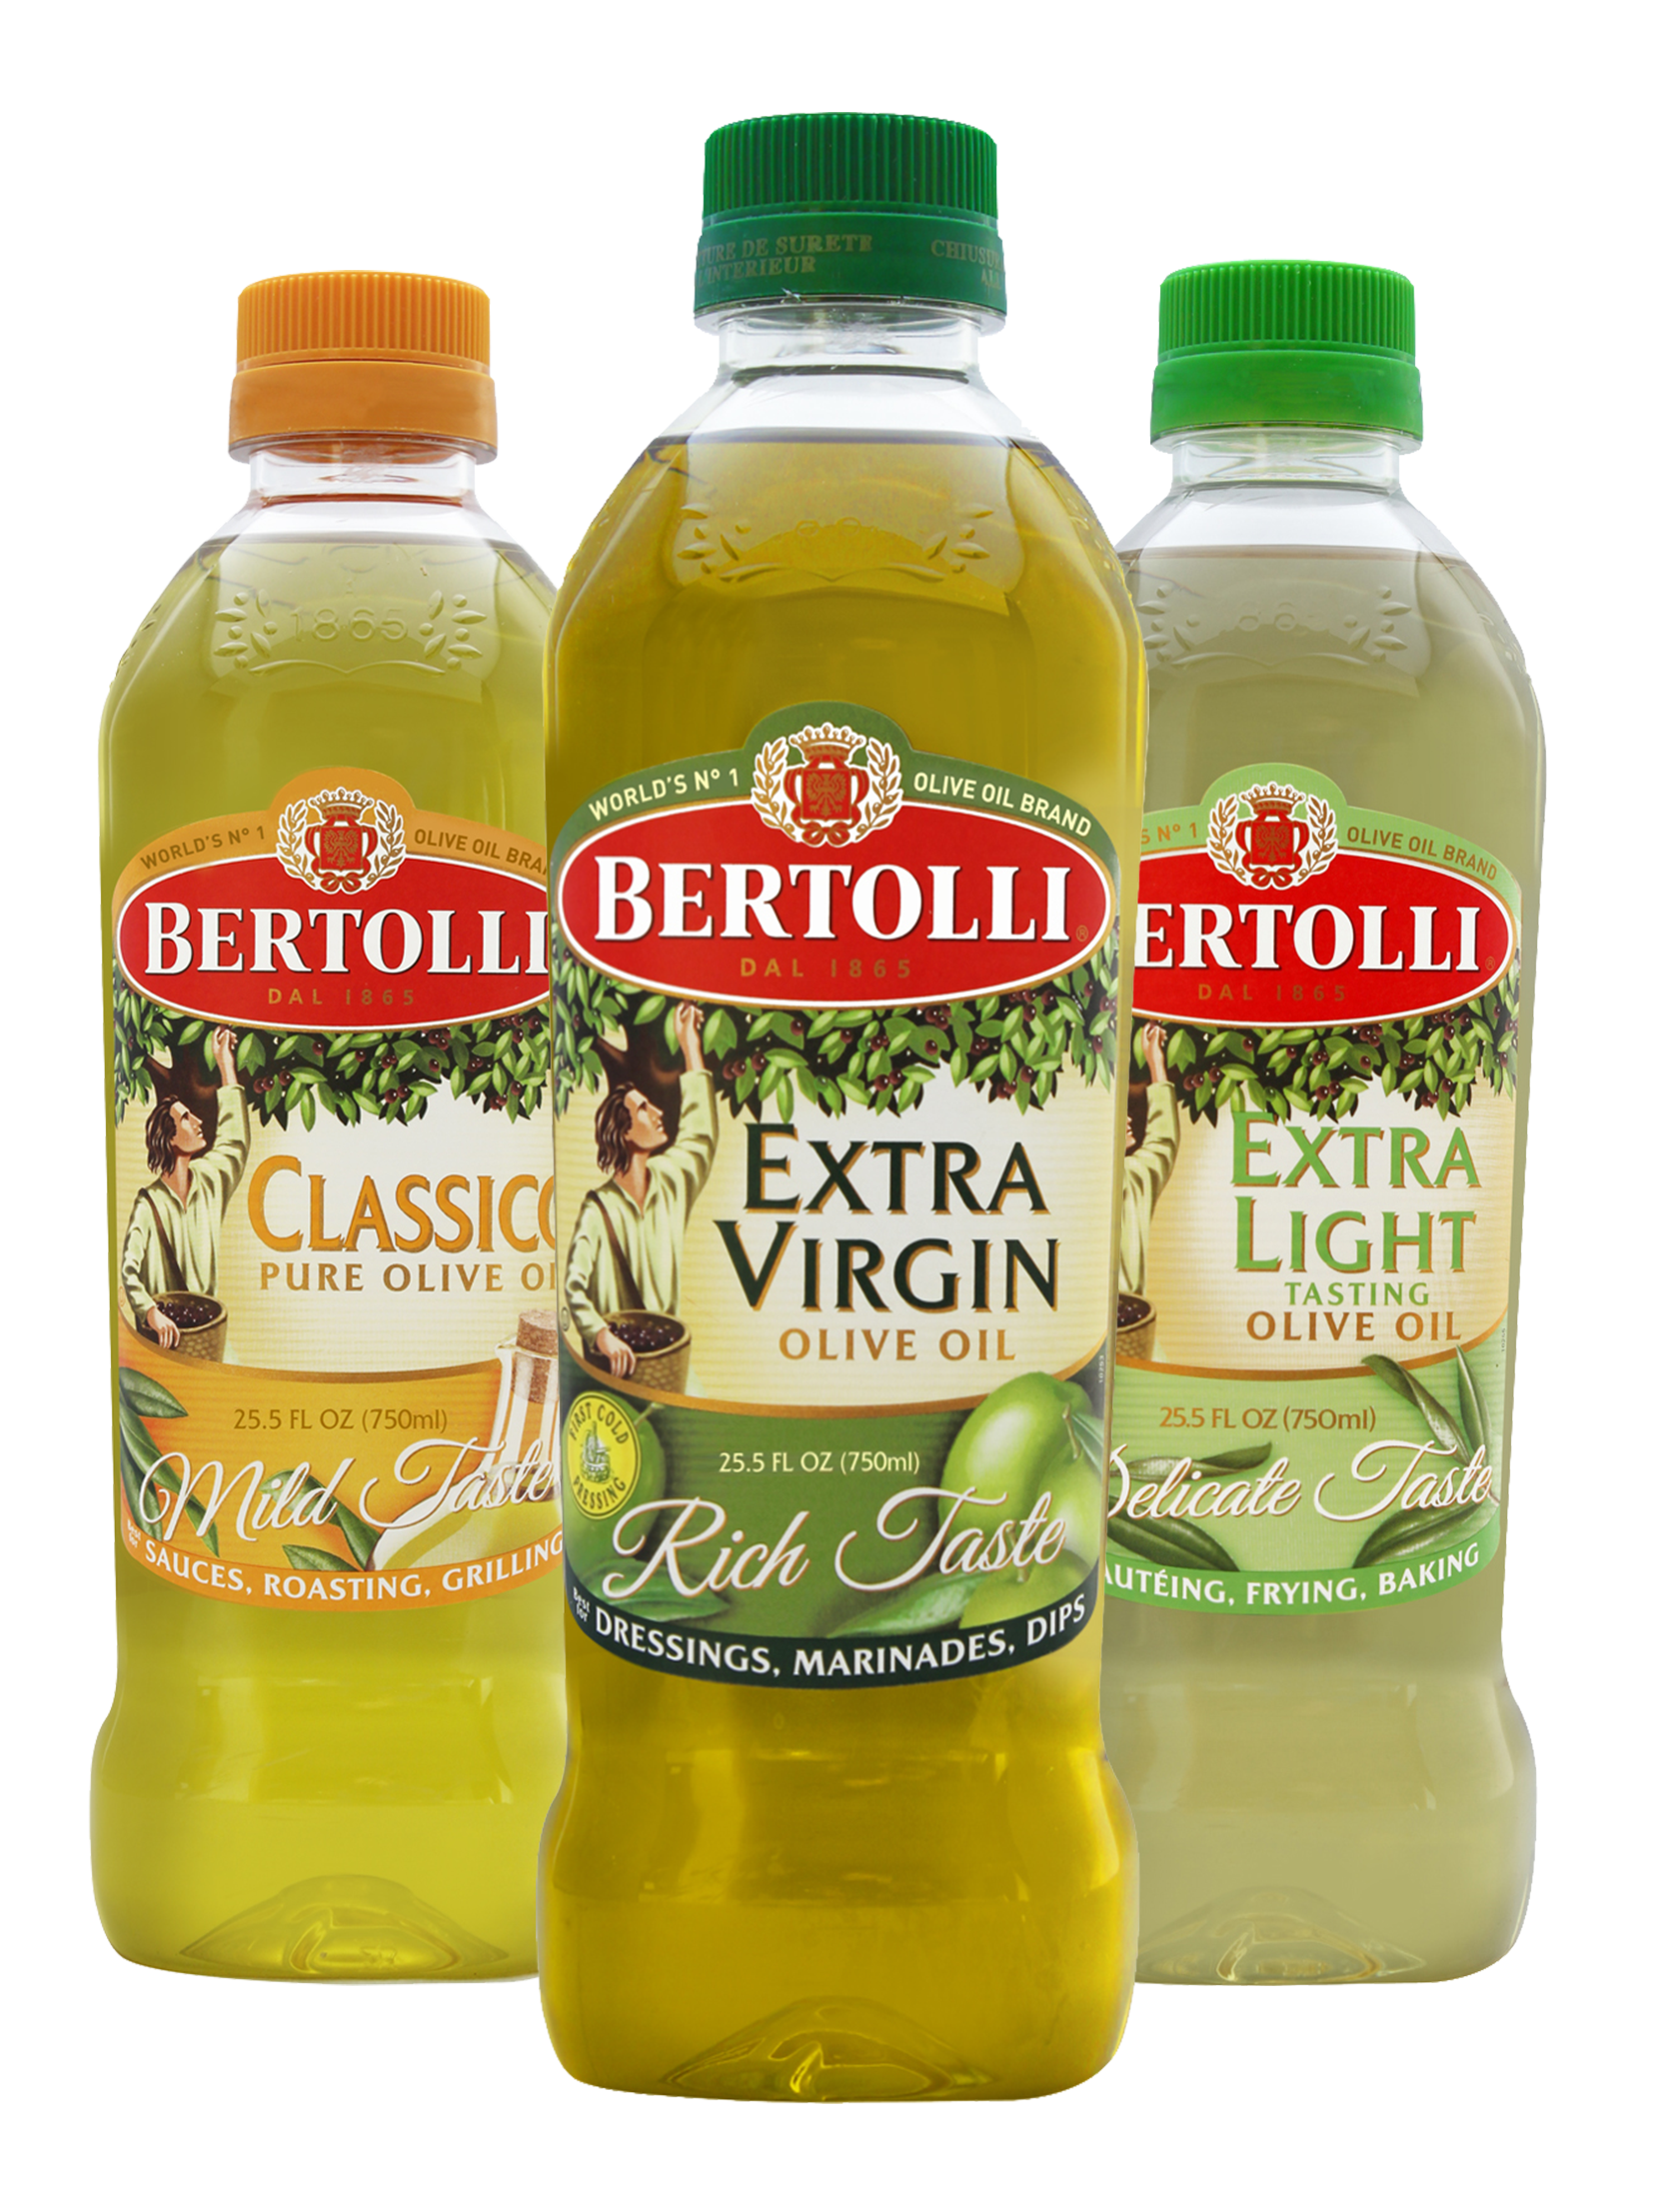 3 varieties of Bertolli Olive Oil